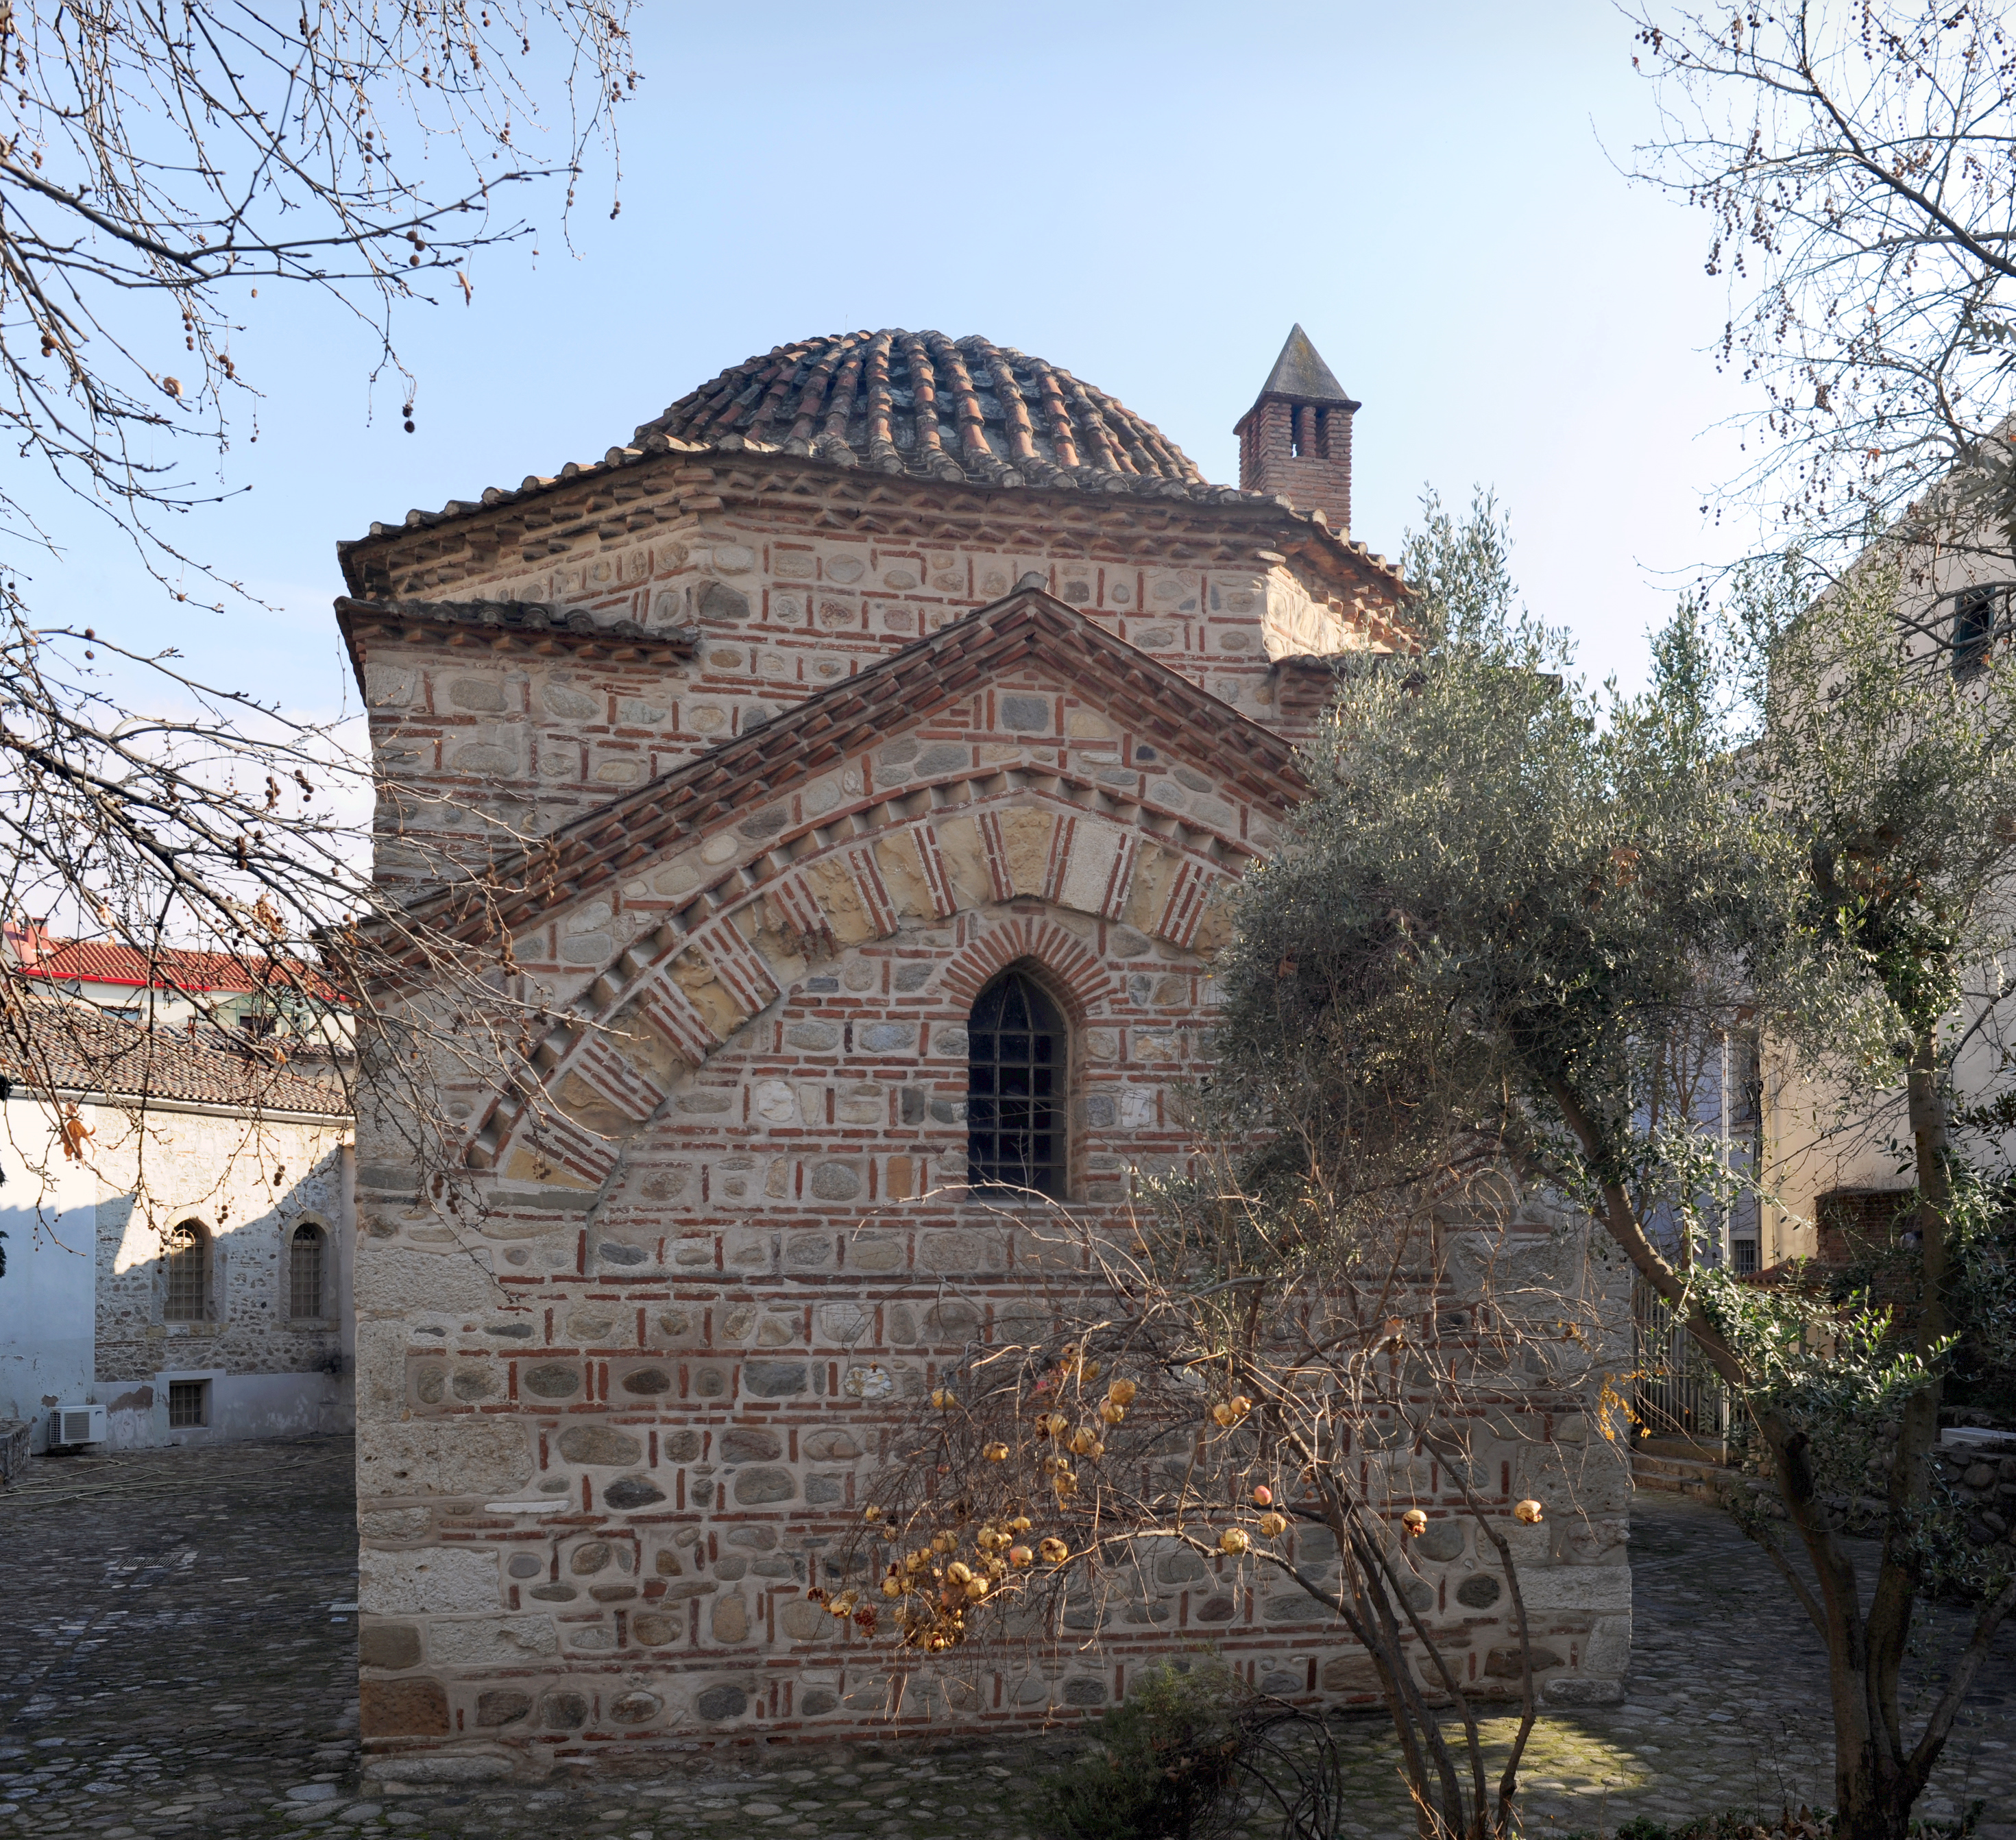 https://upload.wikimedia.org/wikipedia/commons/6/6e/20120105_exterior_Imaret_Komotini_Western_Thrace_Greece_1.jpg